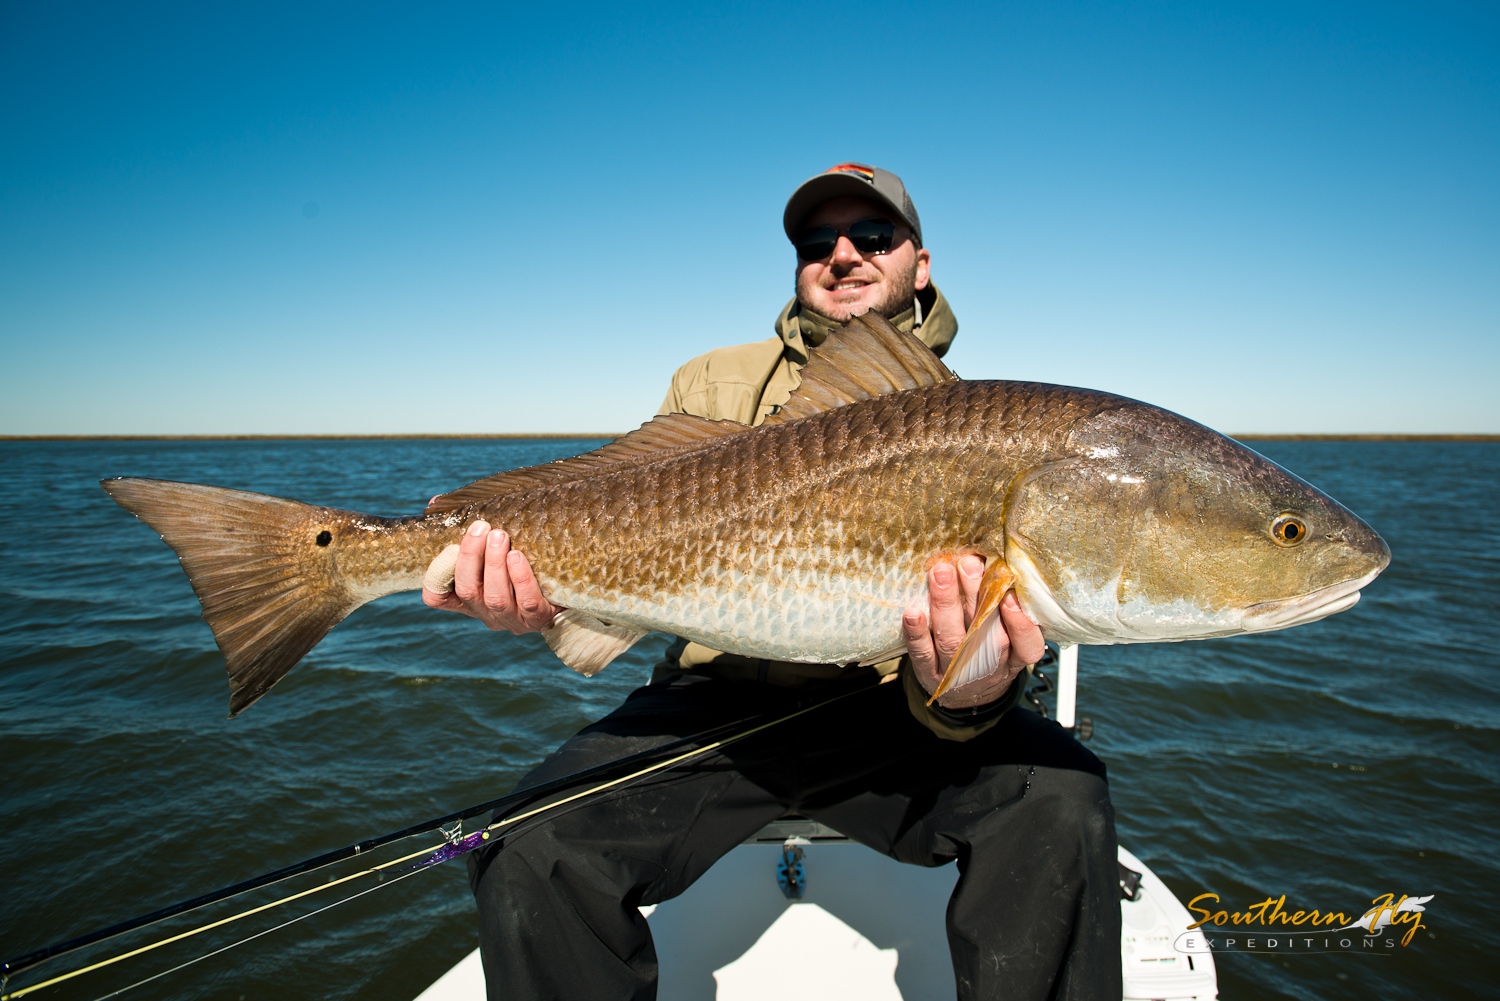 fly fishing in new orleans with Southern Fly Expeditions